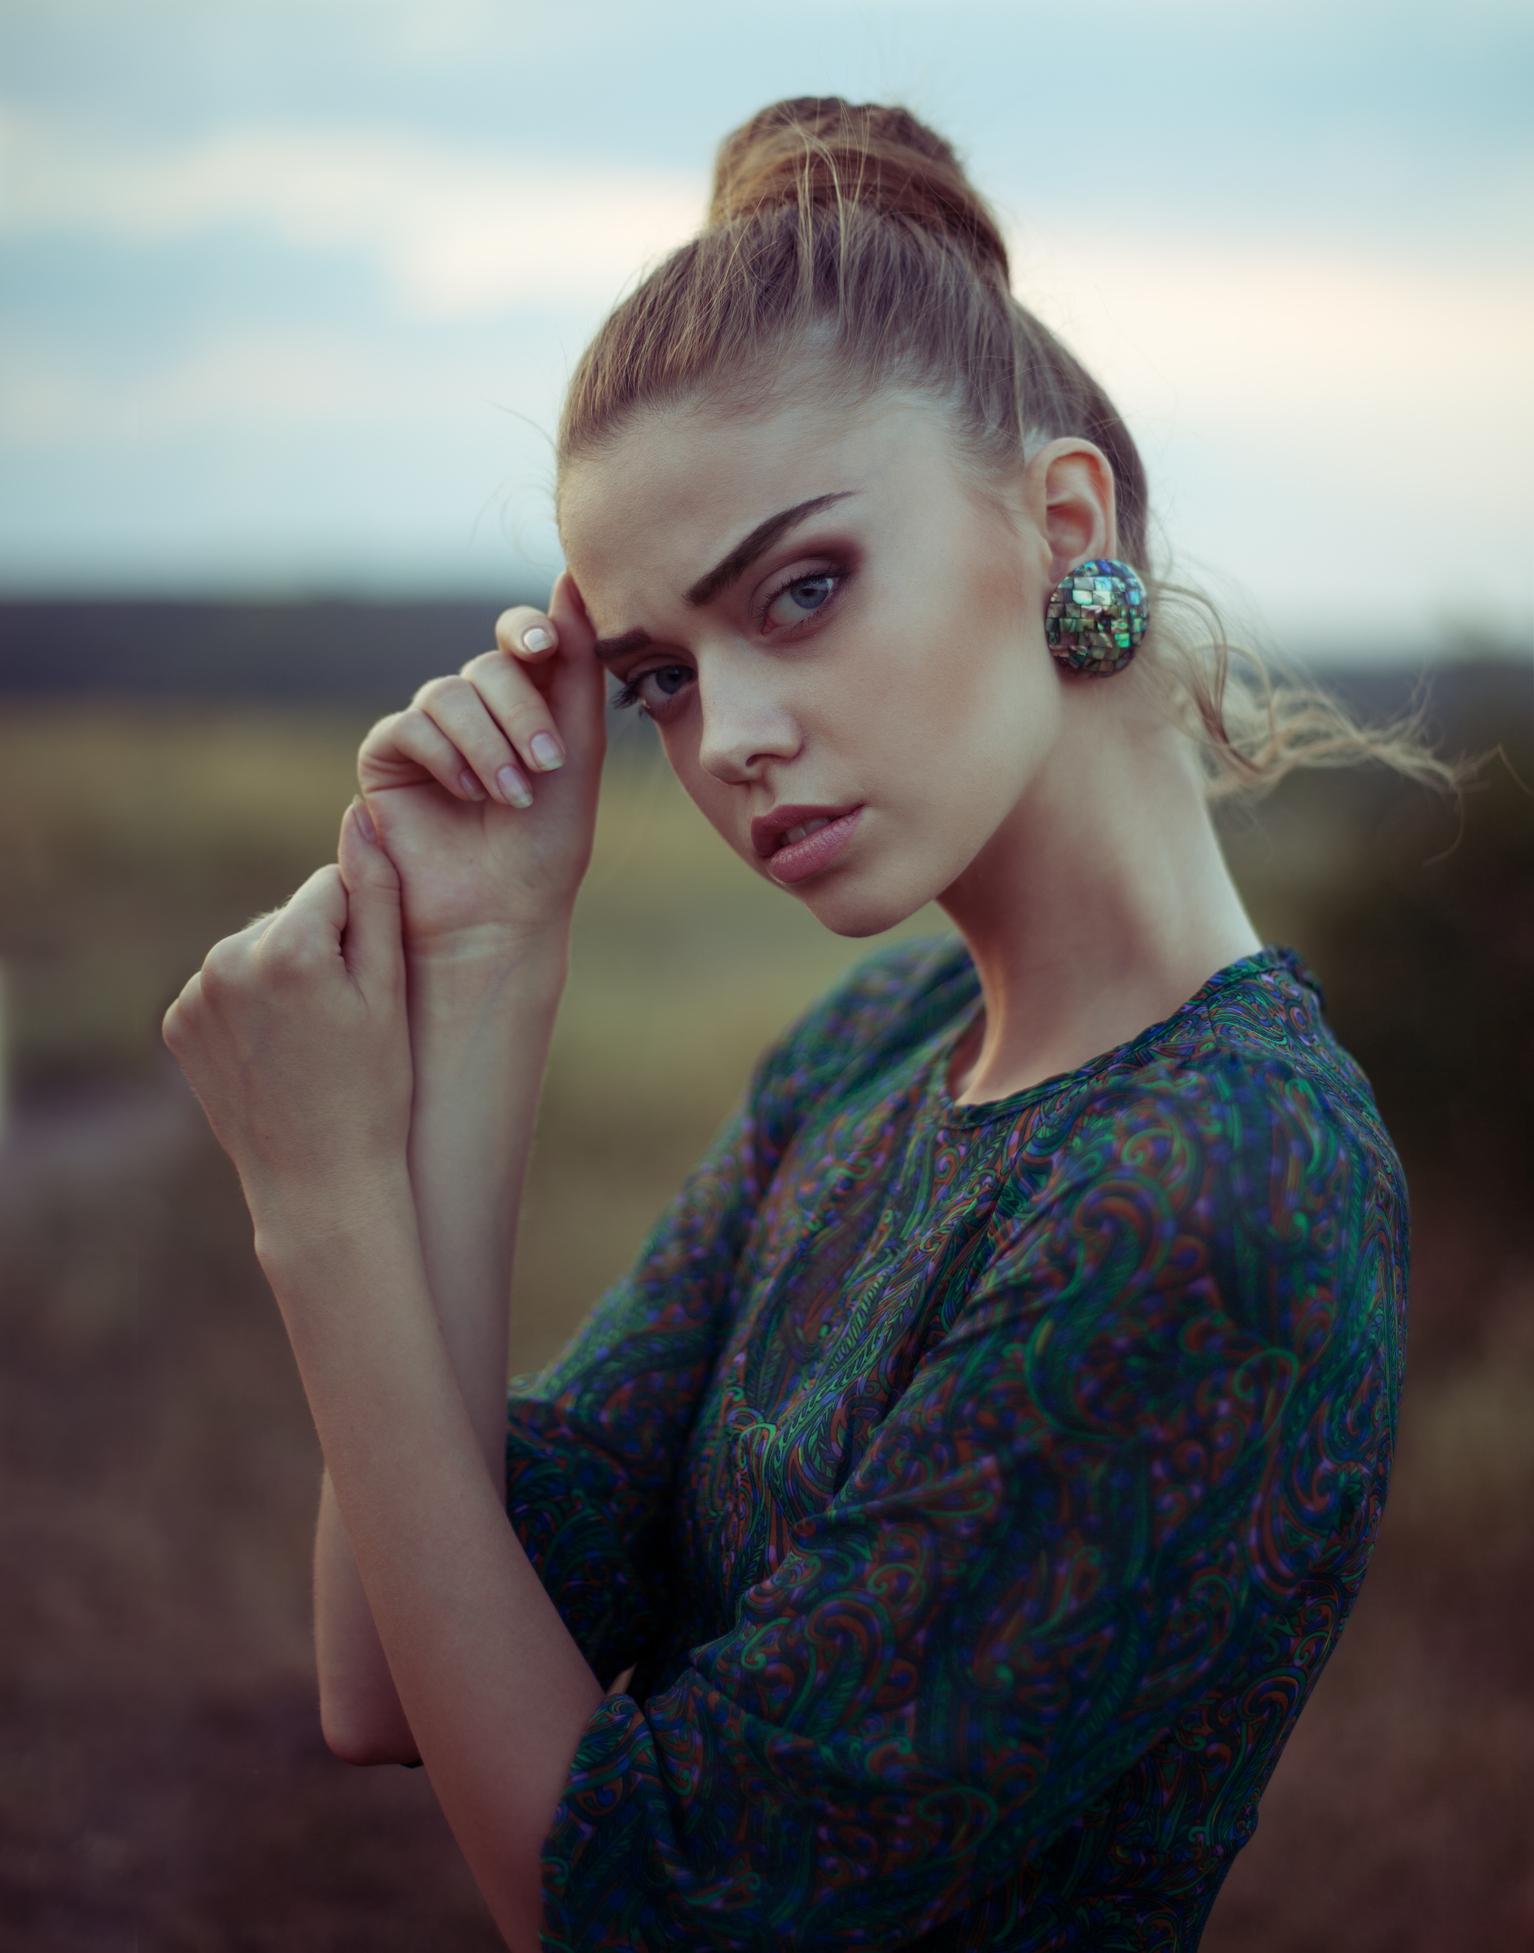 Attend Artists Within for Your Comprehensive In-School Fashion Styling Training